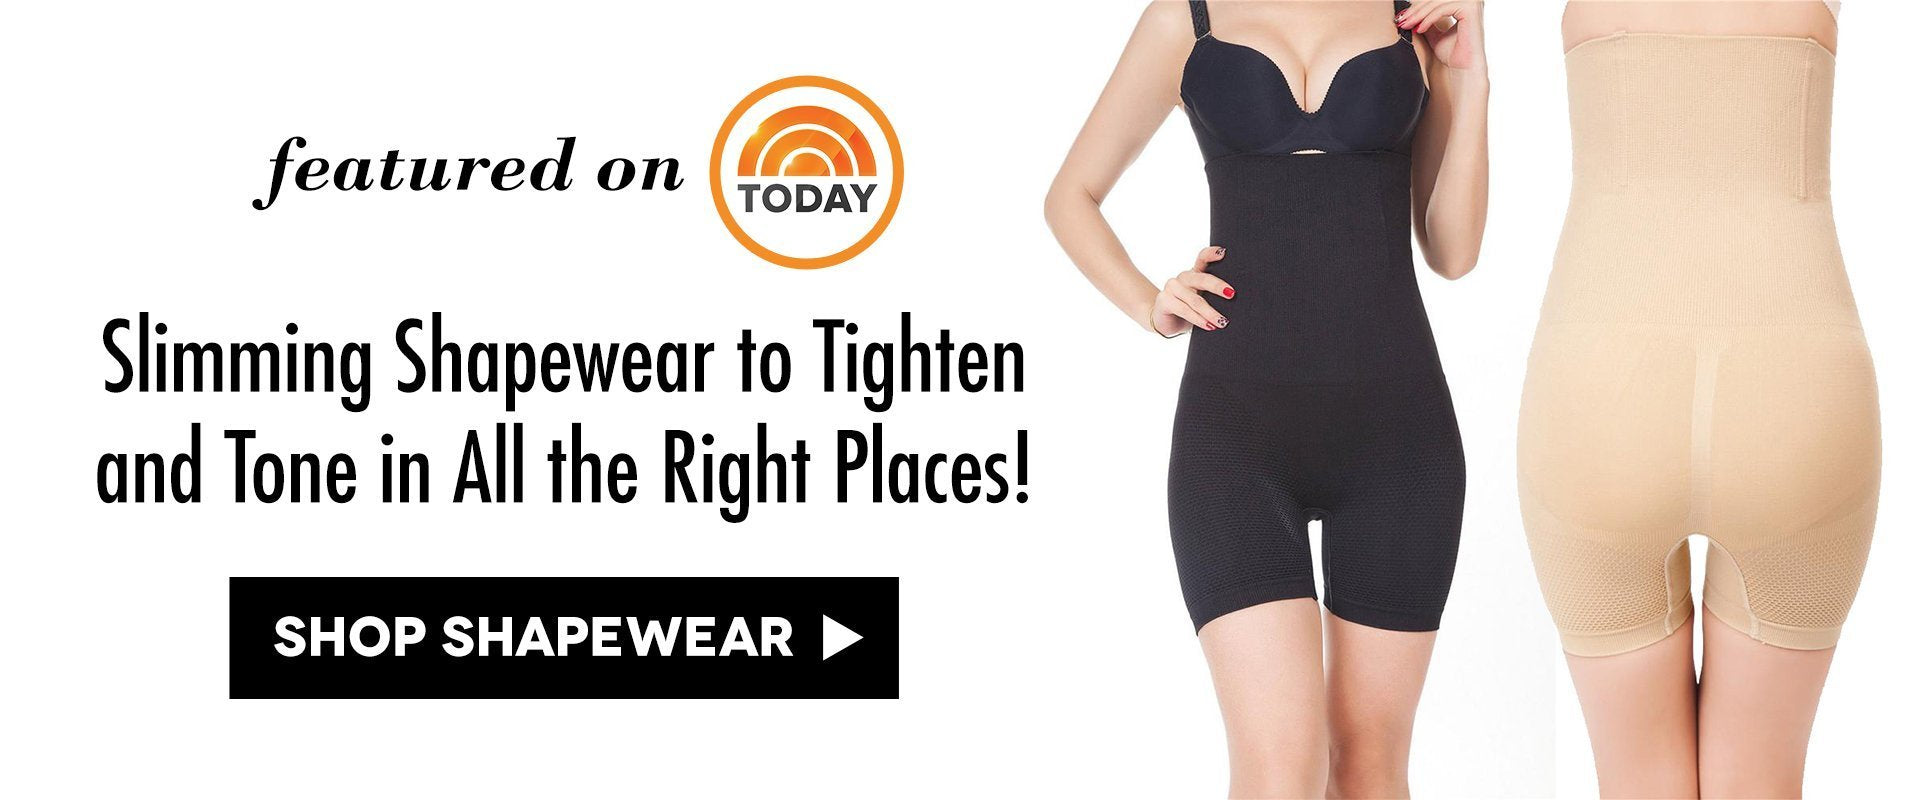 Win $500 in free shapewear